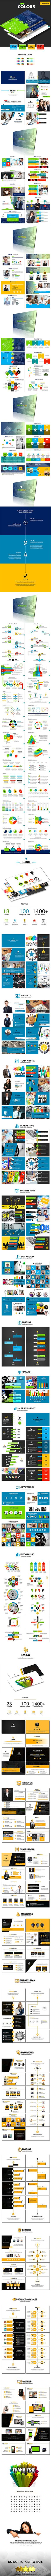 3 in 1 - Keynote/PowerPoint Business Presentation Template from GraphicRiver.